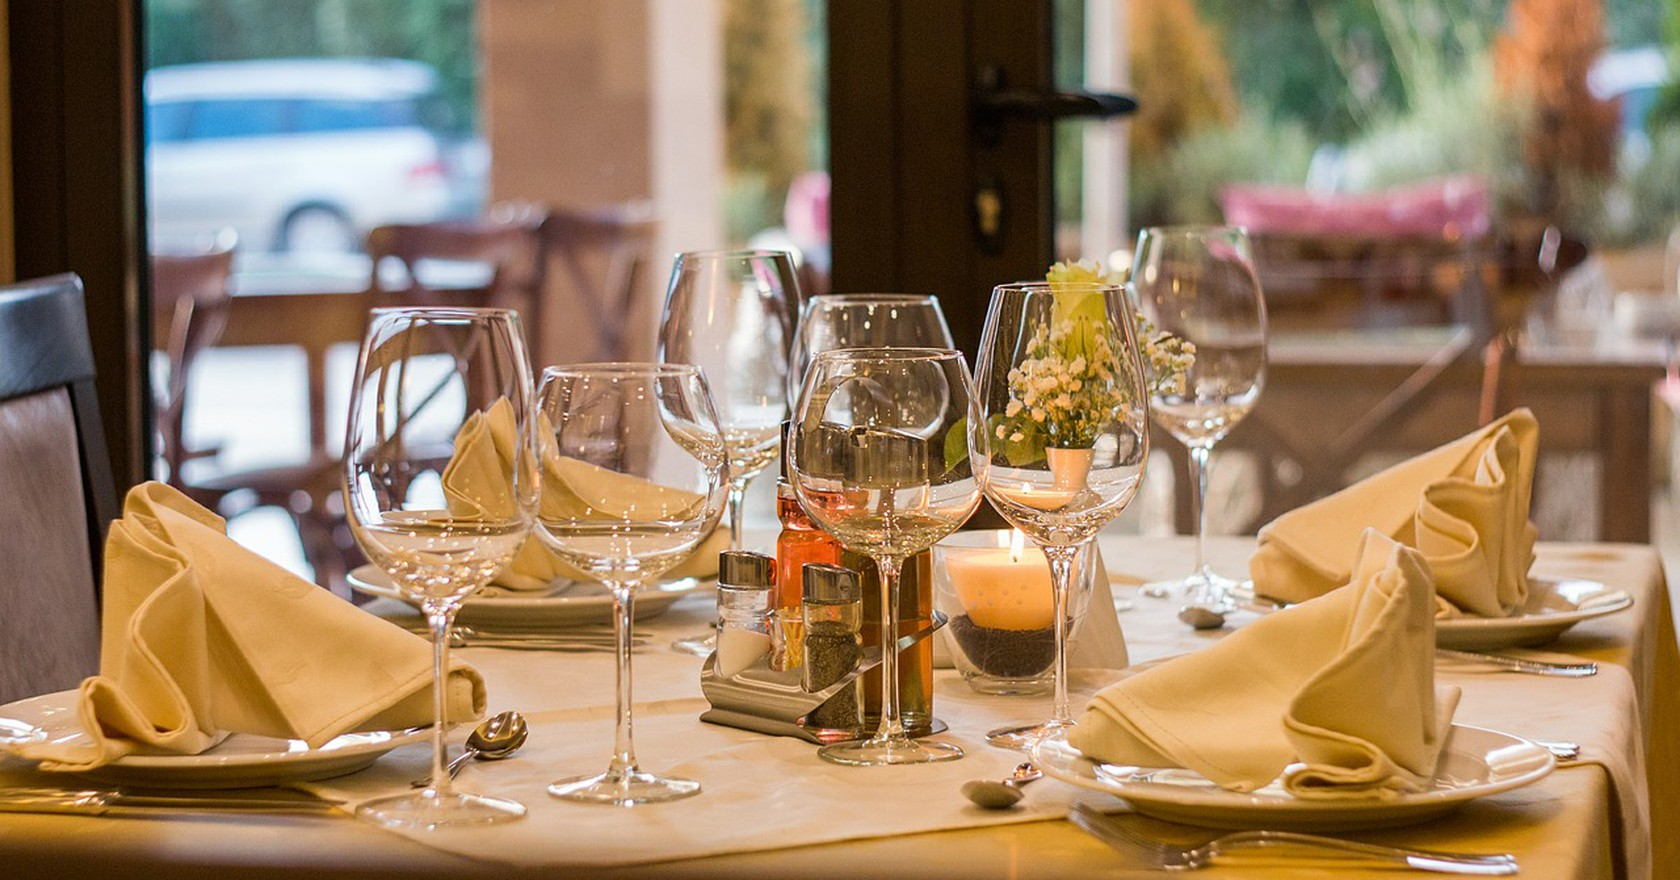 Known Primarily As The Home Of Walt Disney World Orlando Also Boasts A Vibrant Dining